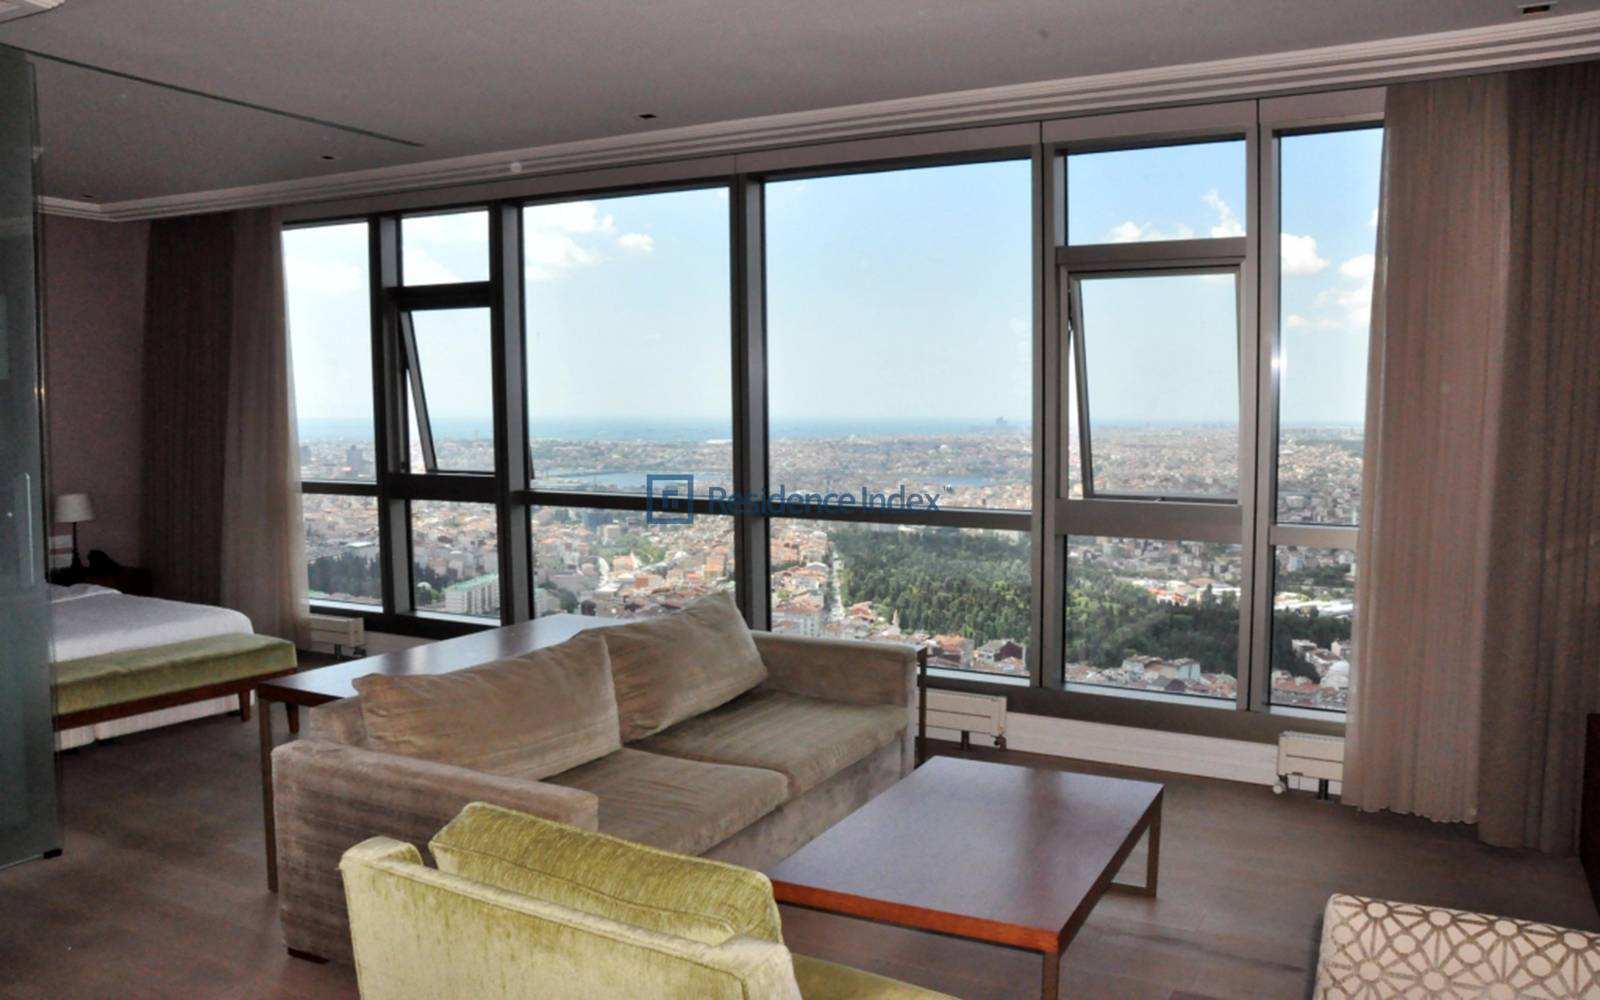 1 + 1 Apartment with Bosphorus View on the High Floor